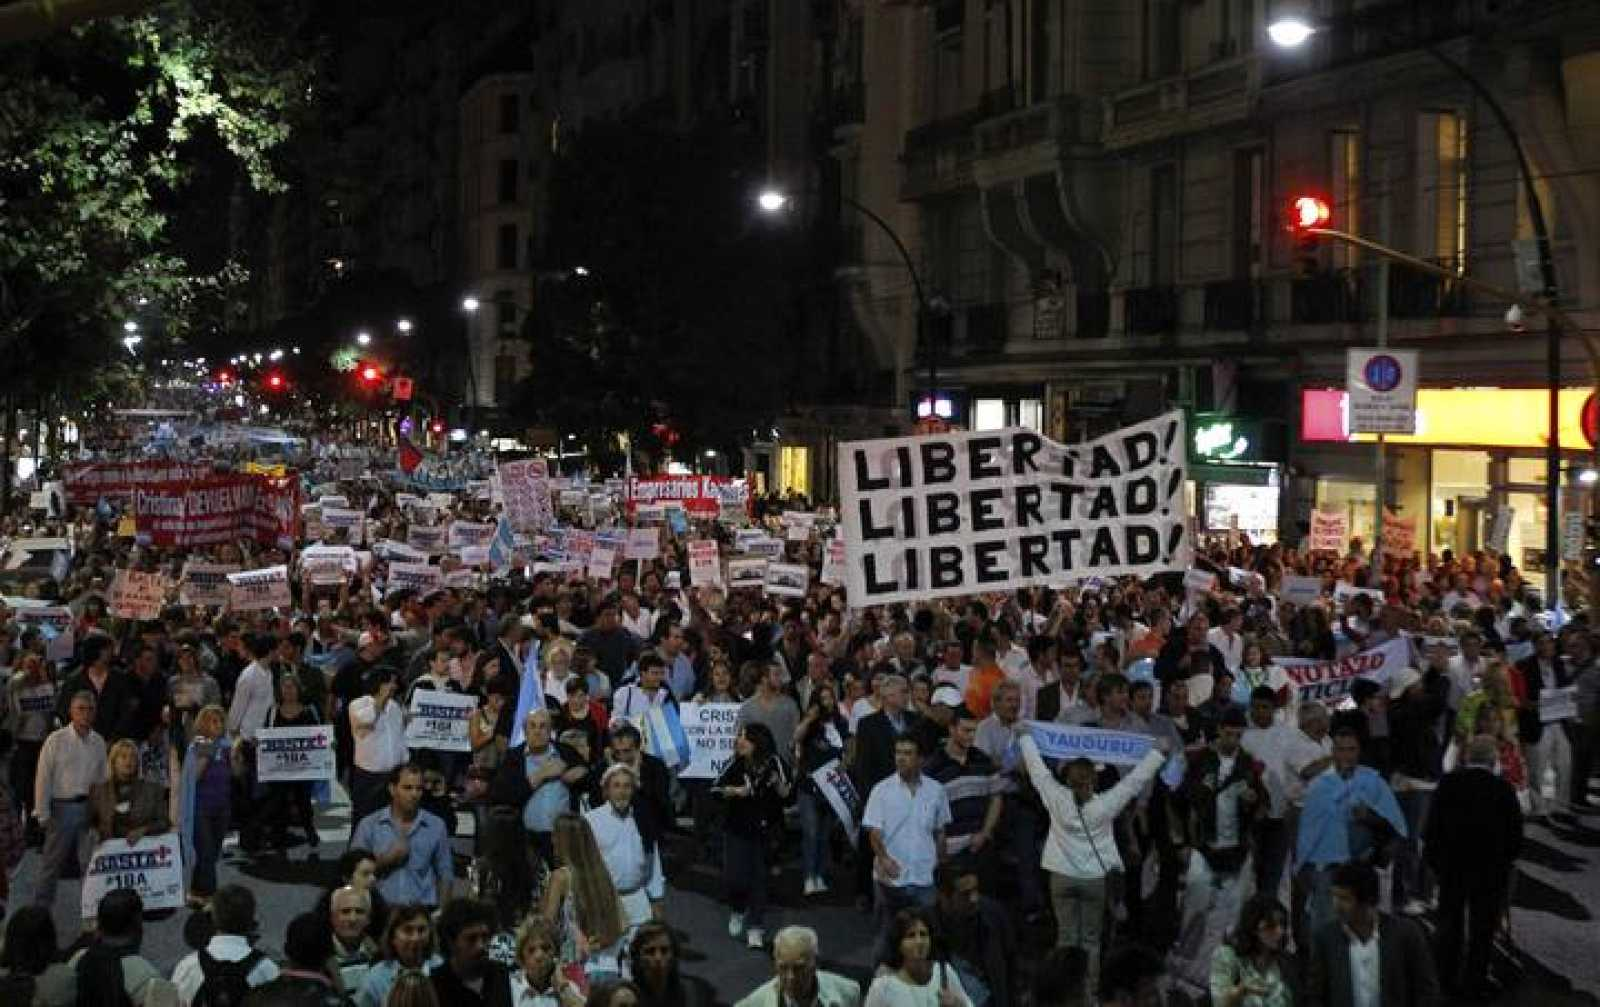 Protesters march during a demonstration against Argentine President de Kirchner's administration in Buenos Aires